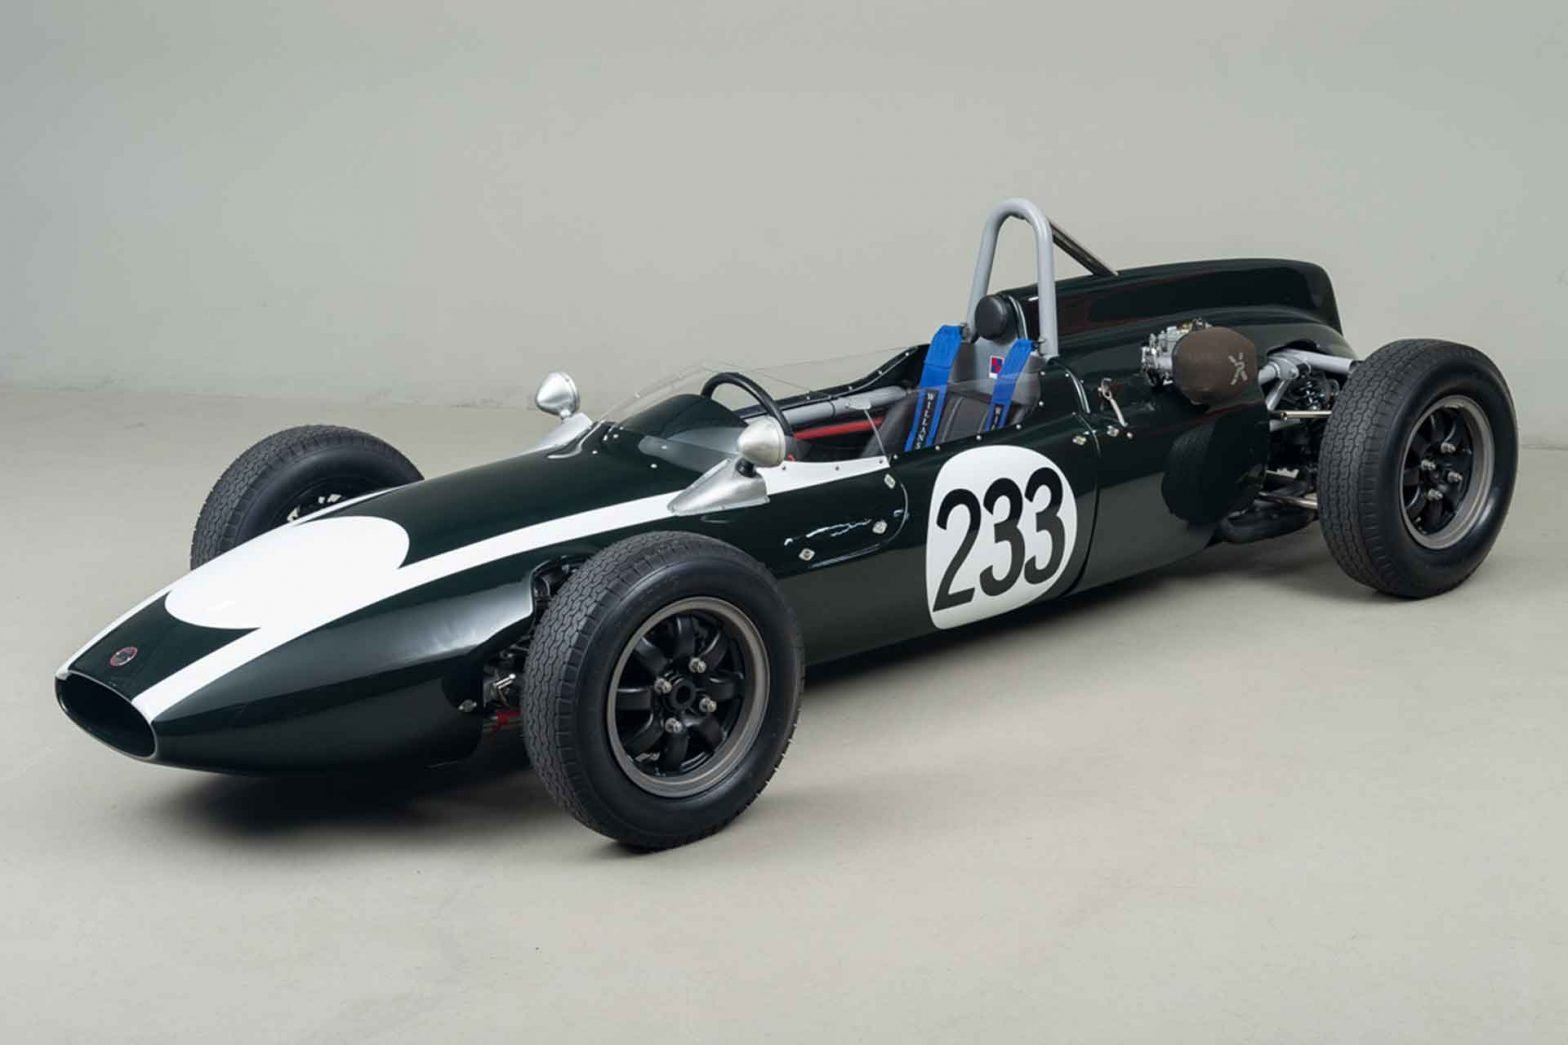 Steve McQueen's Cooper T-56 Formula Junior Race Car